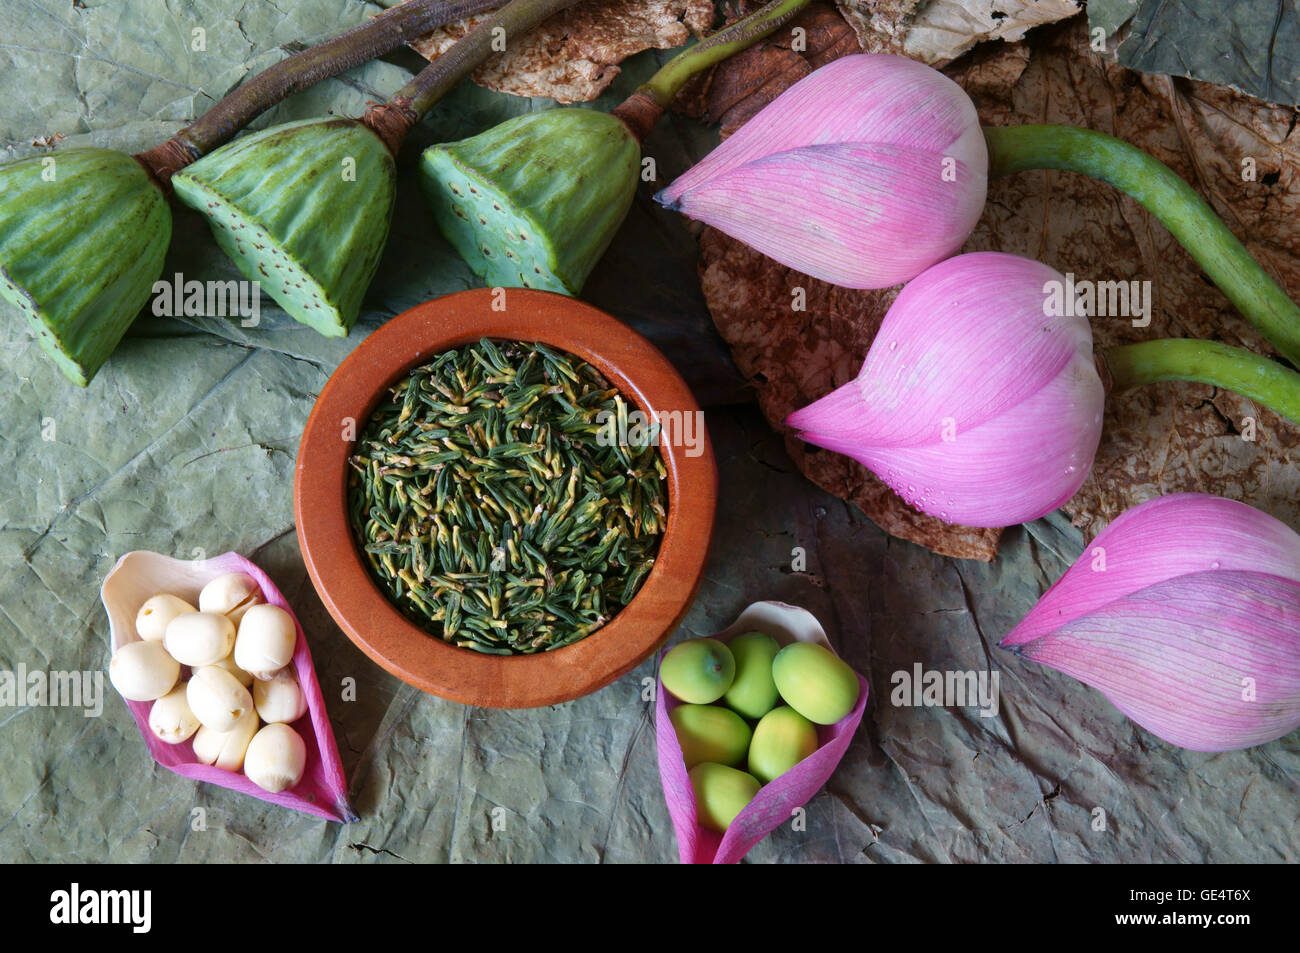 Collection Of Lotus Pink Lotus Flower Green Seed White Lotus Seed